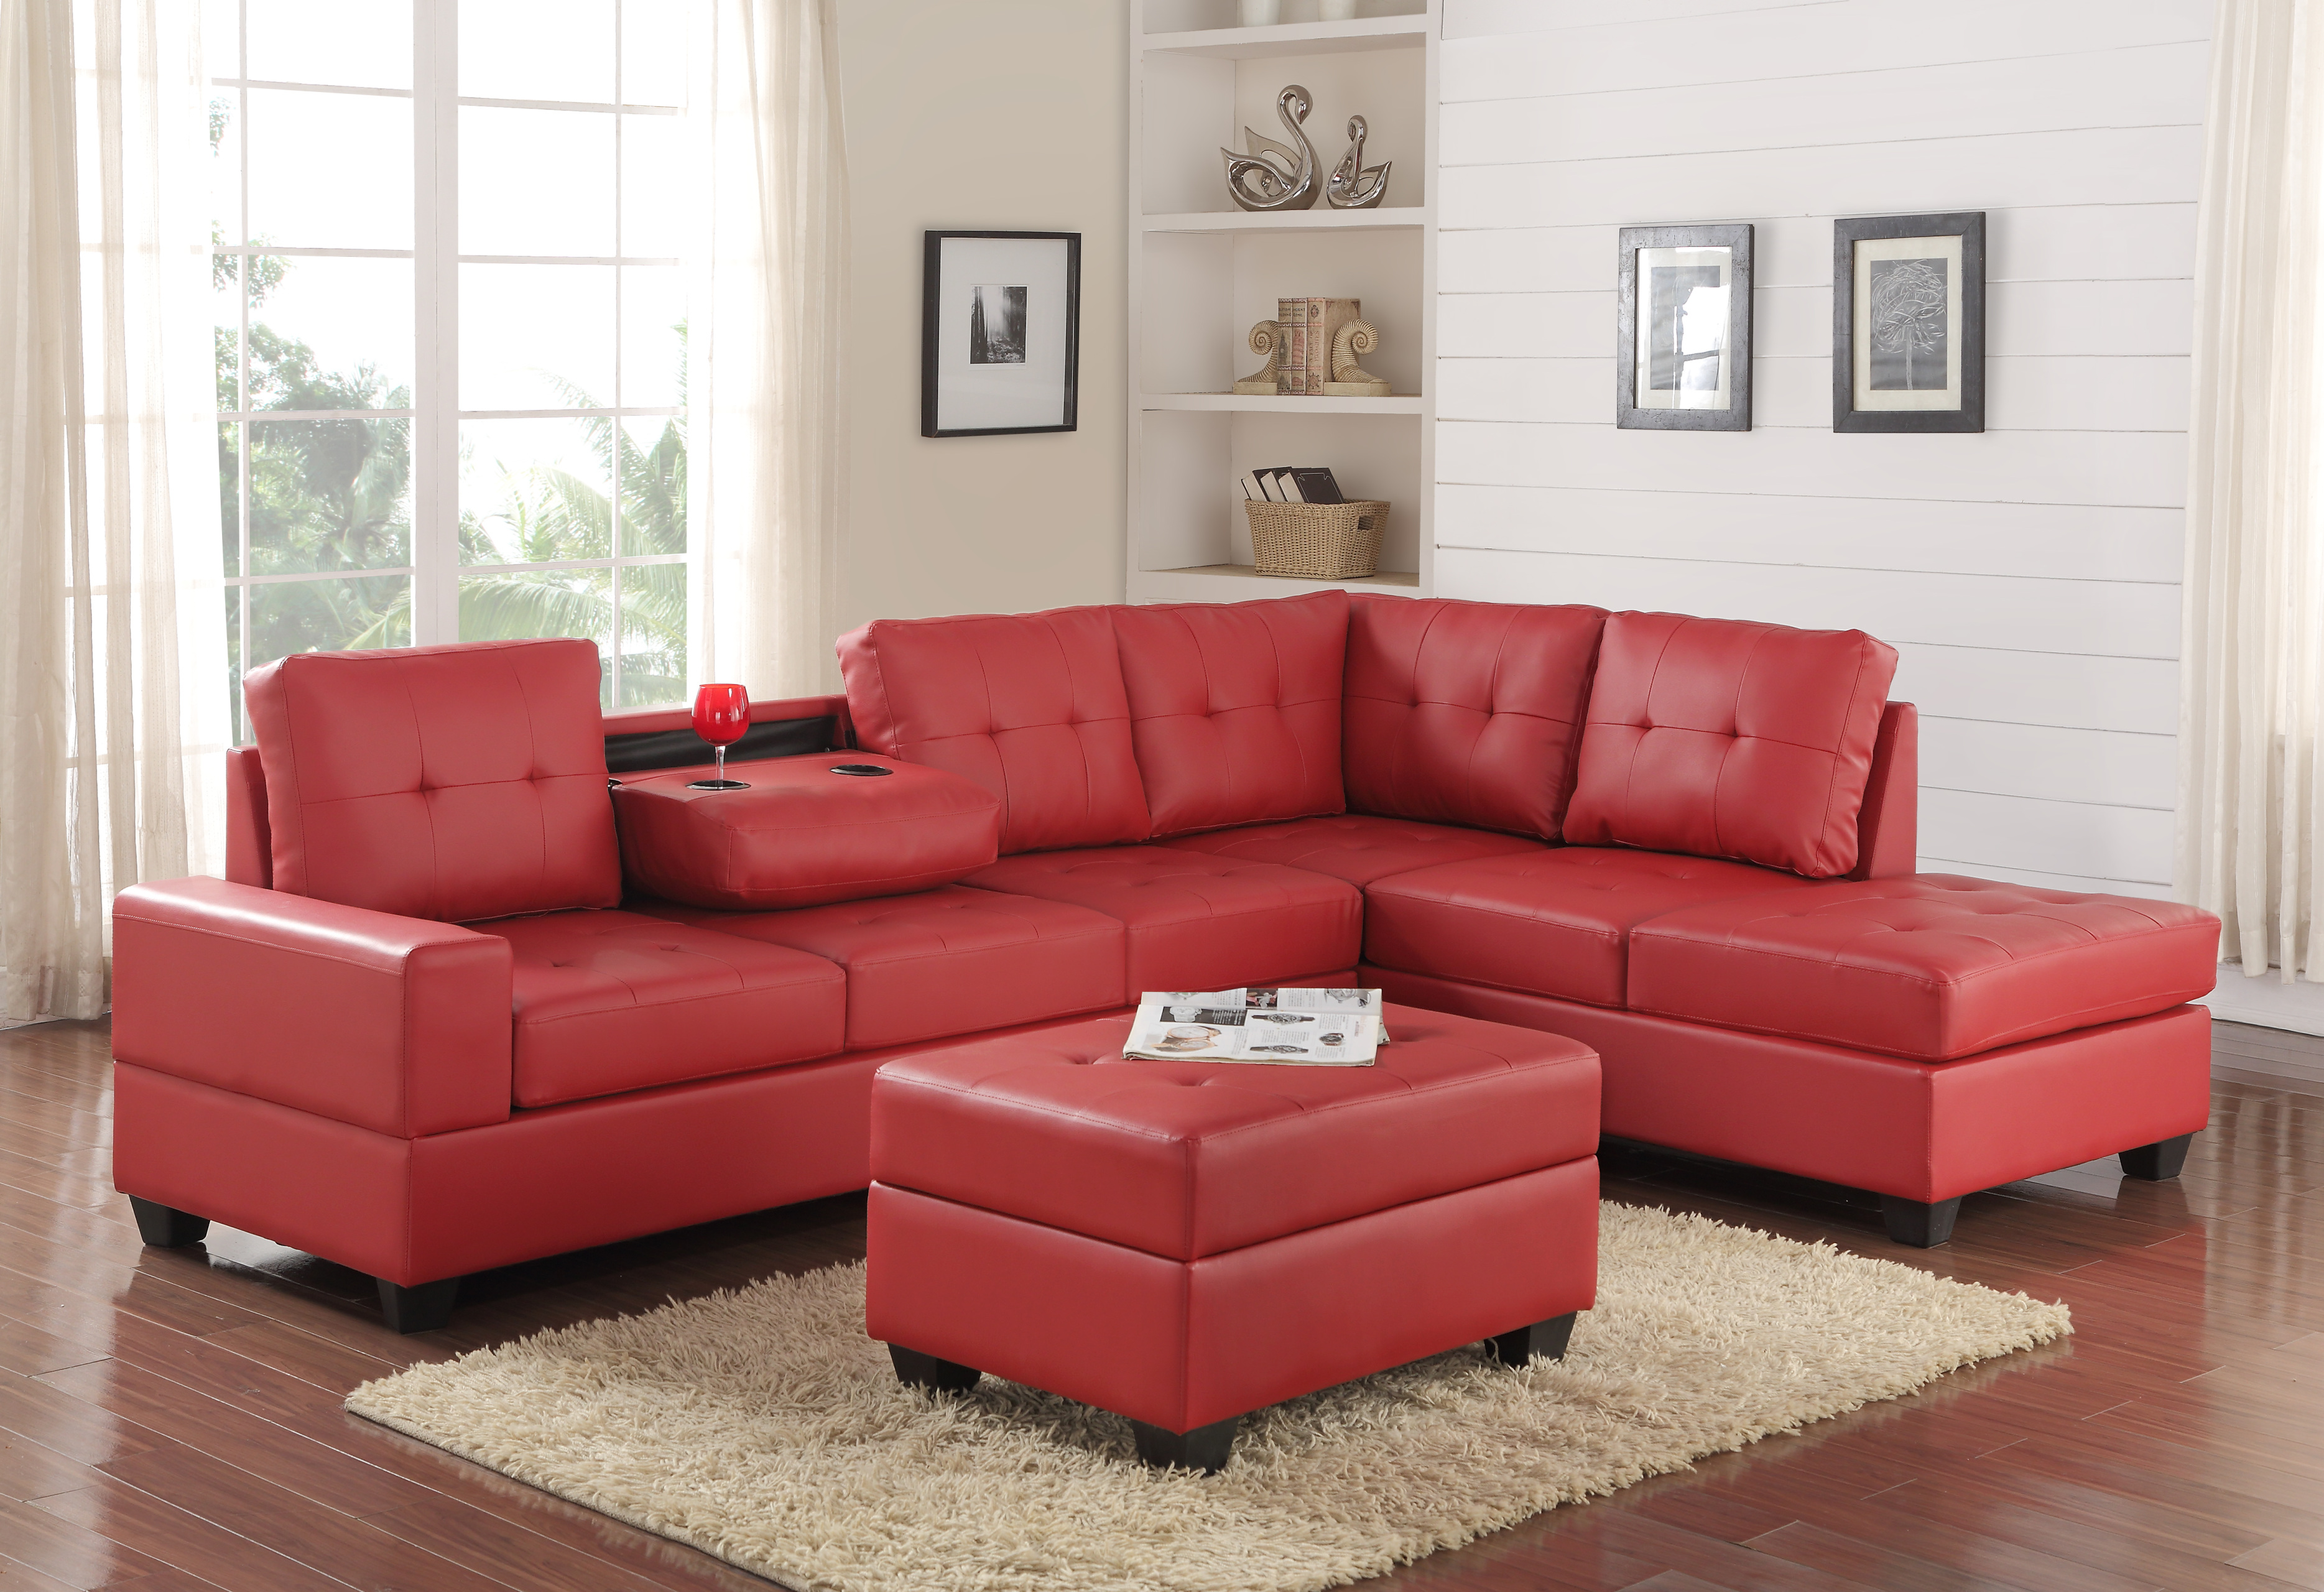 HEIGHTS SECTIONAL OTTOMAN SET Red